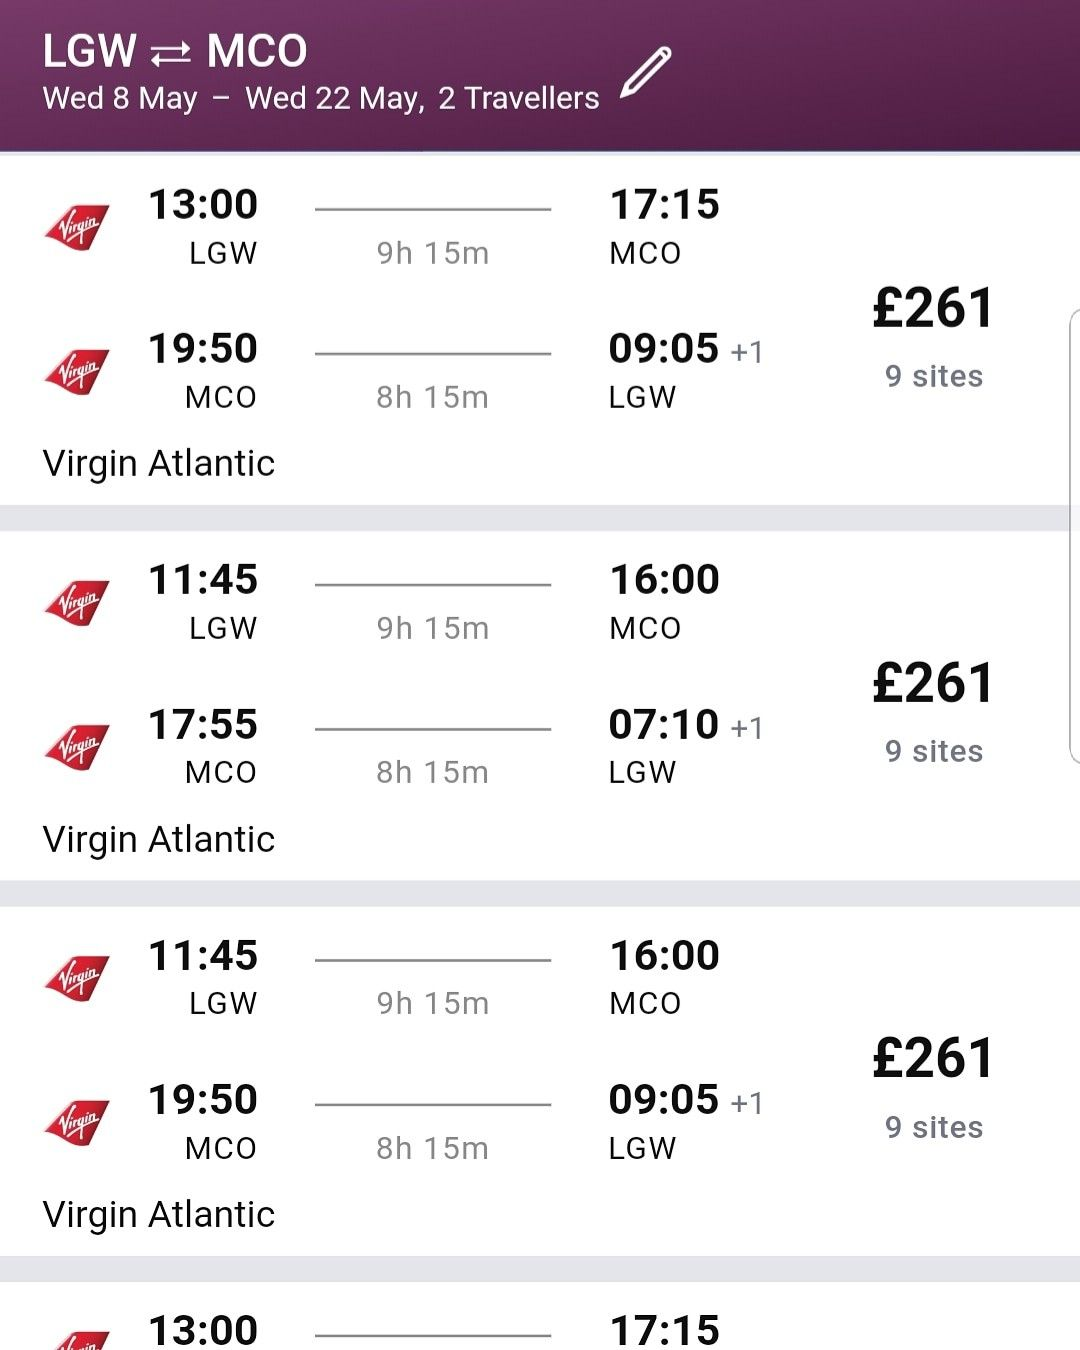 ORLANDO MAY 2019 DEAL!!! Direct flight ONLY £261 00 per person